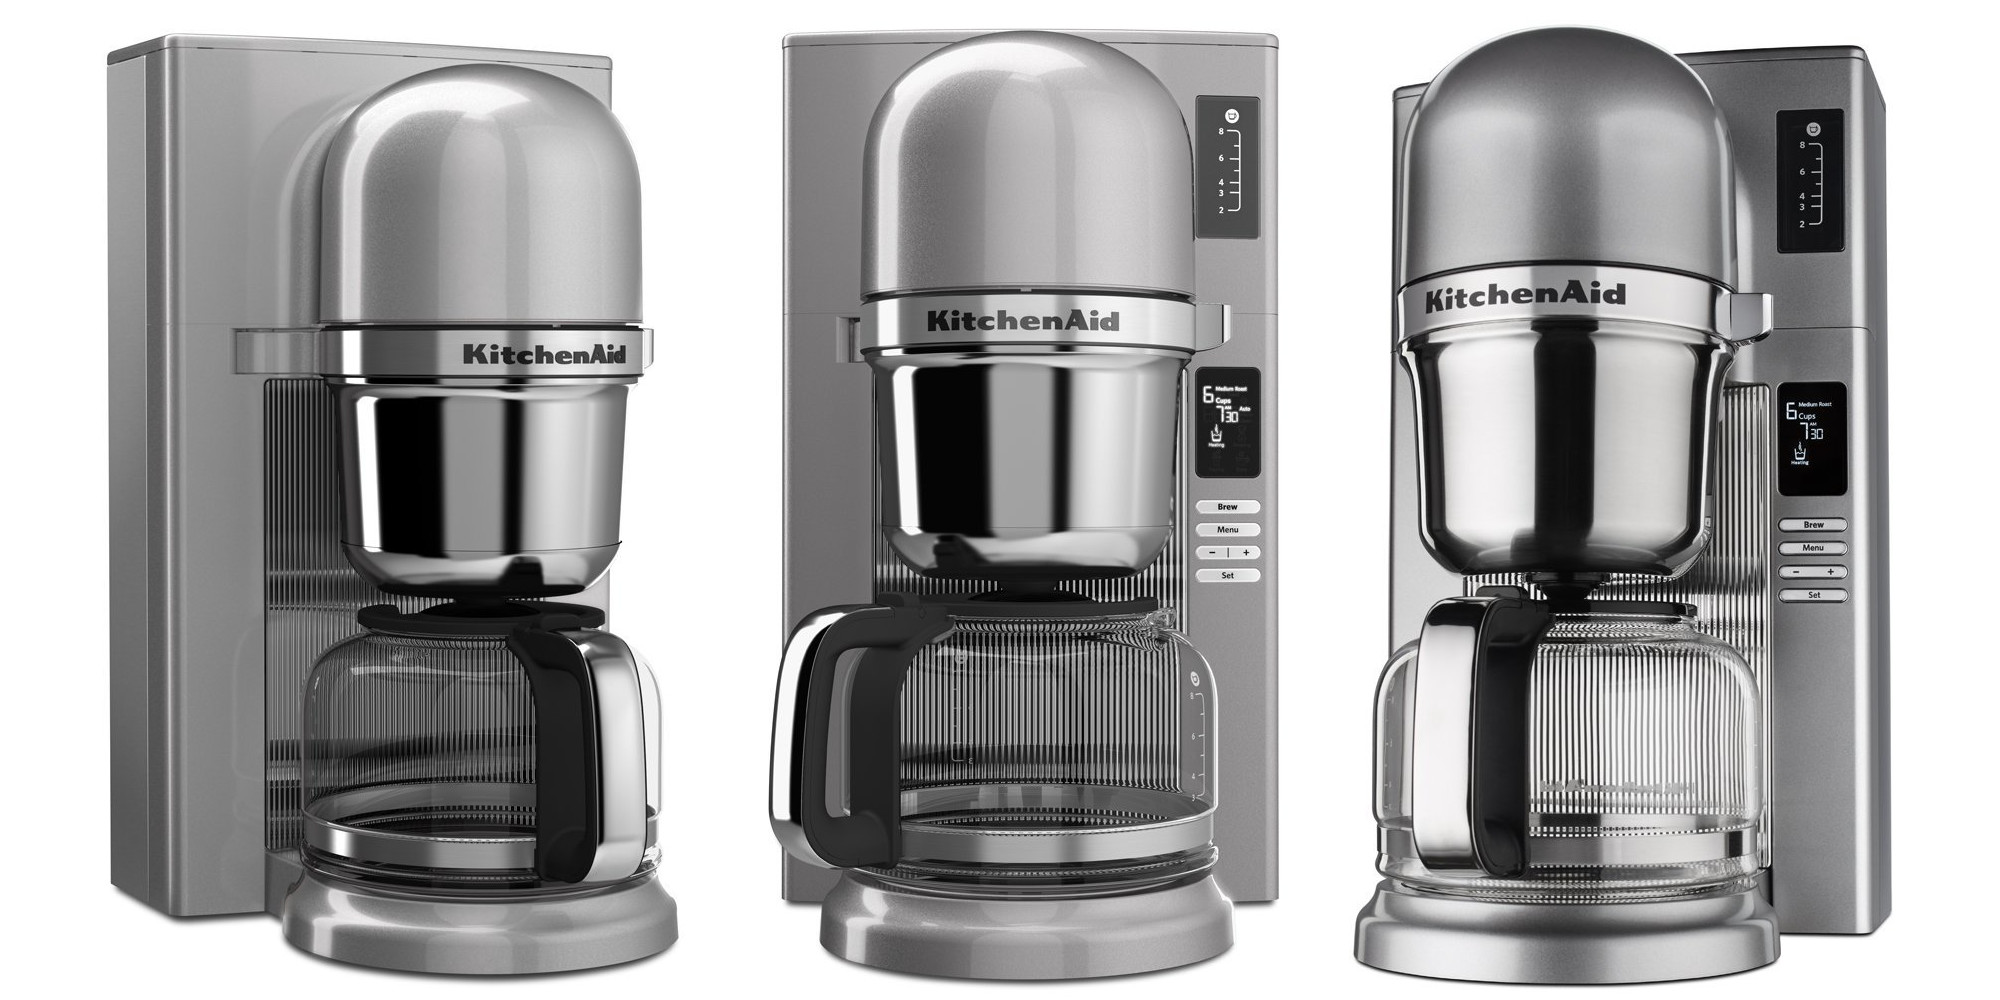 Kitchenaid S Brushed Stainless Steel Digital Pour Over